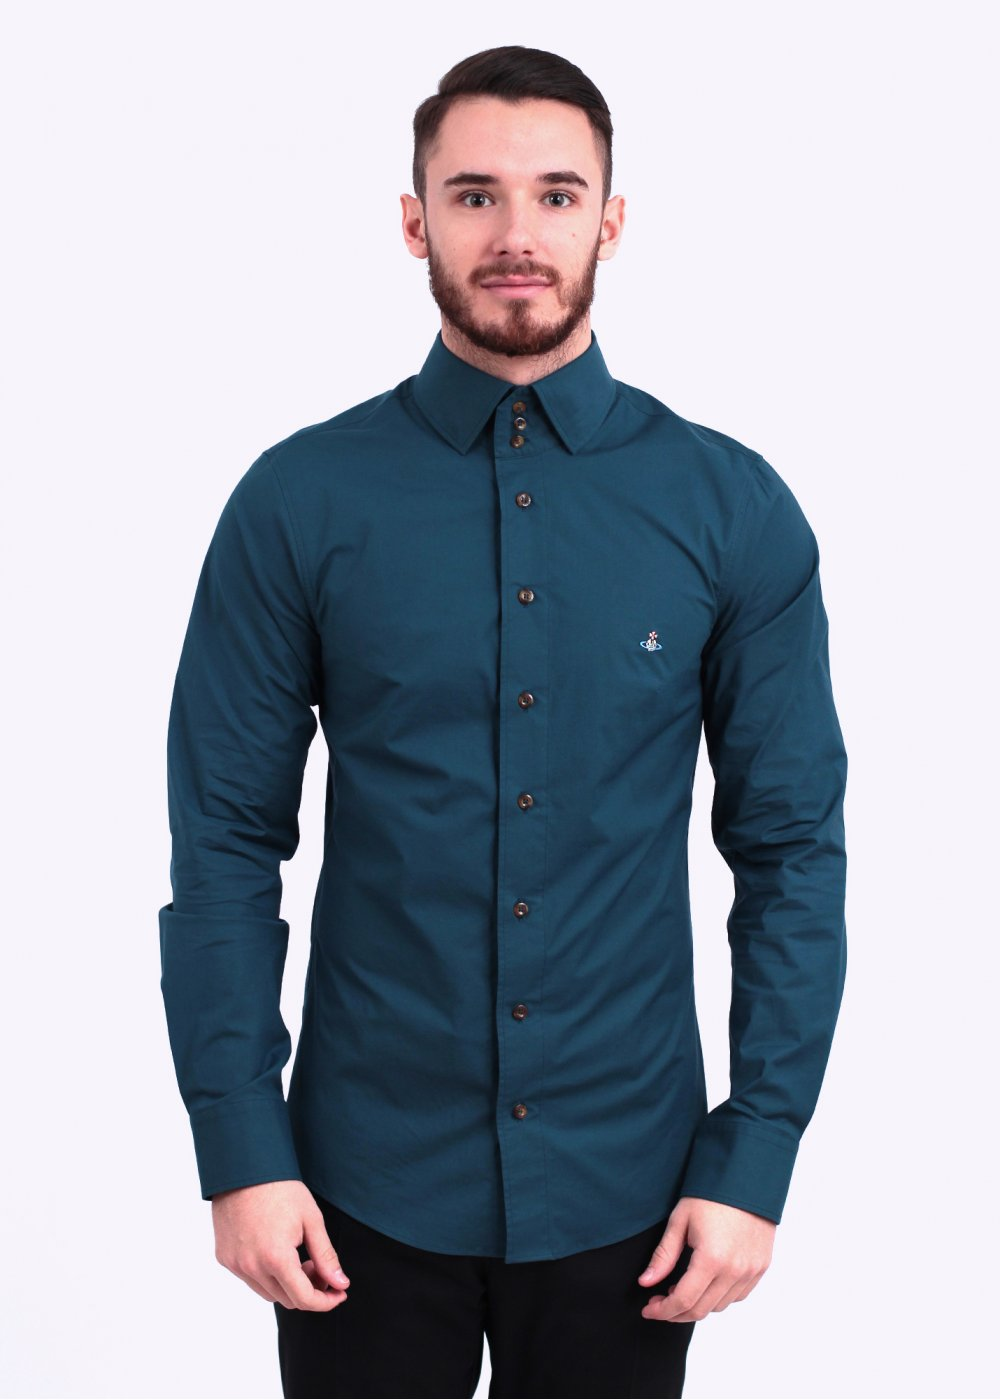 Vivienne westwood 3 button shirt teal for Mens teal button down shirt